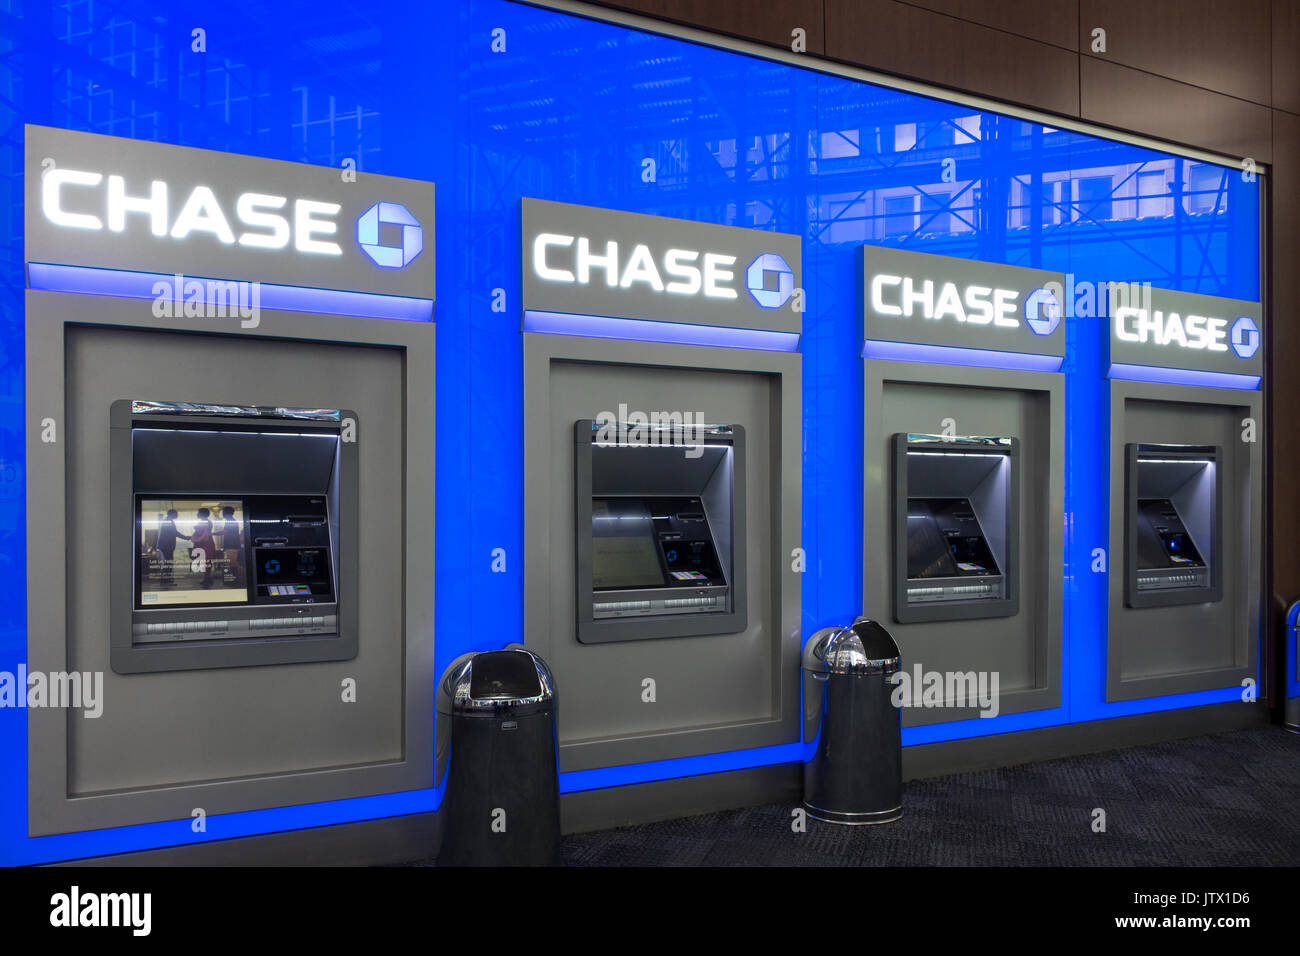 Chase Stock Photos & Chase Stock Images - Alamy